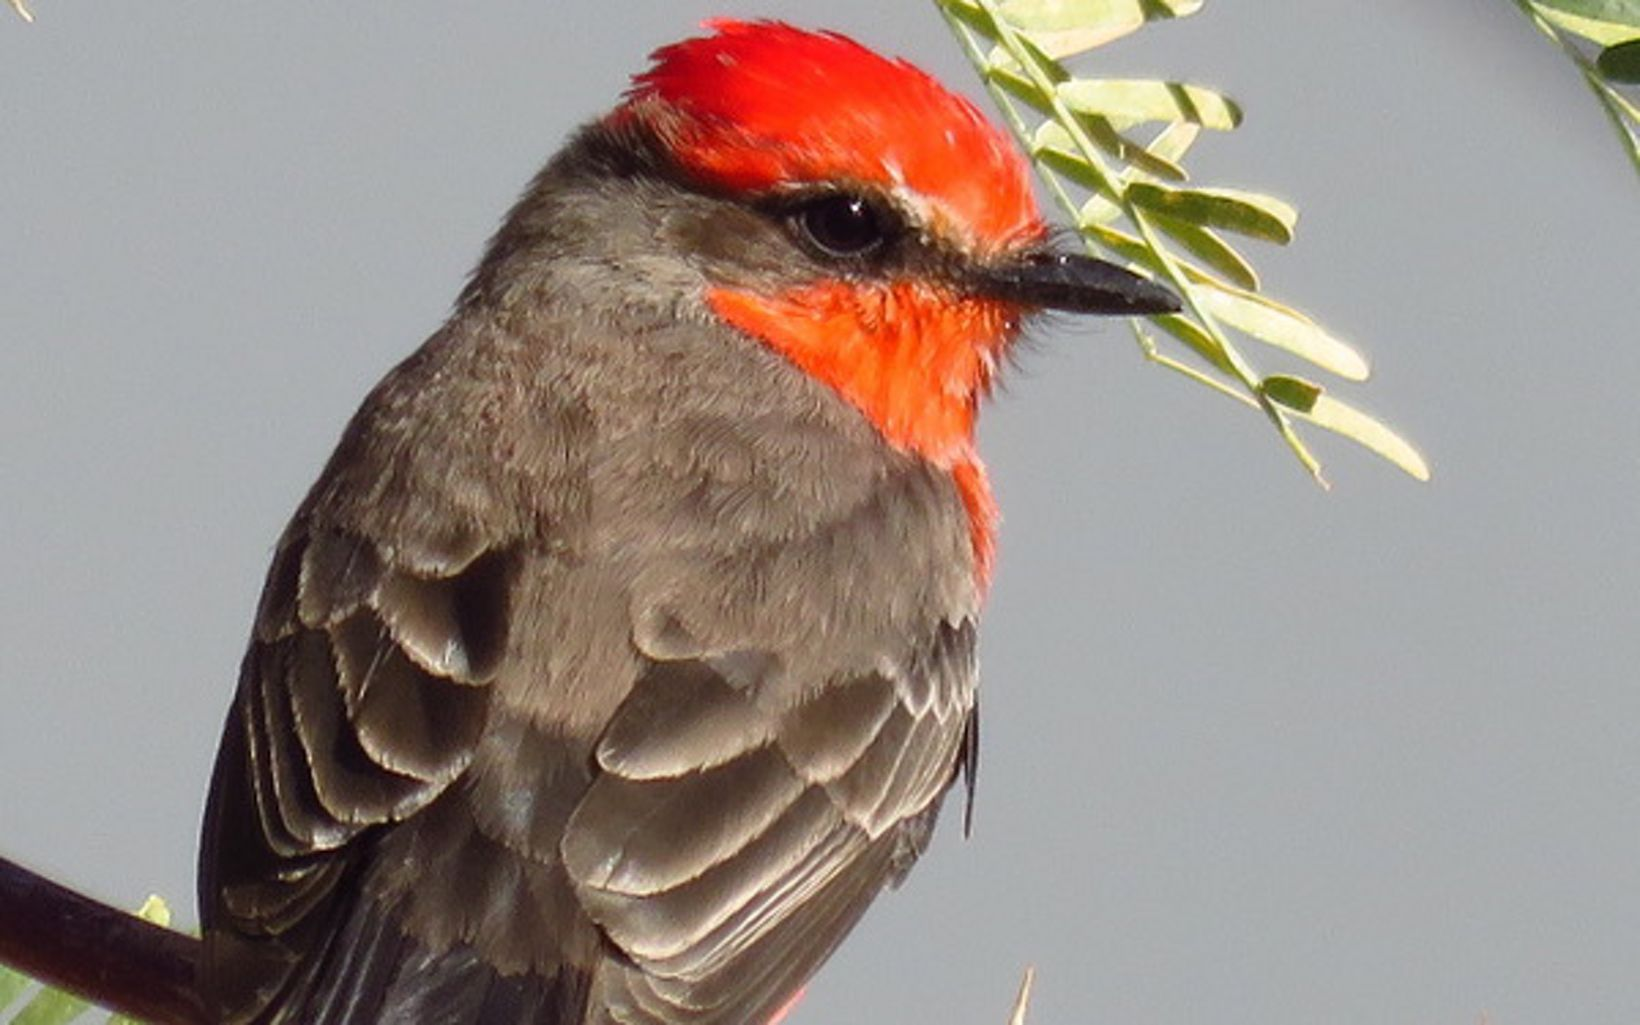 Many bird species can be found at 7J Ranch, including the vermillion flycatcher.